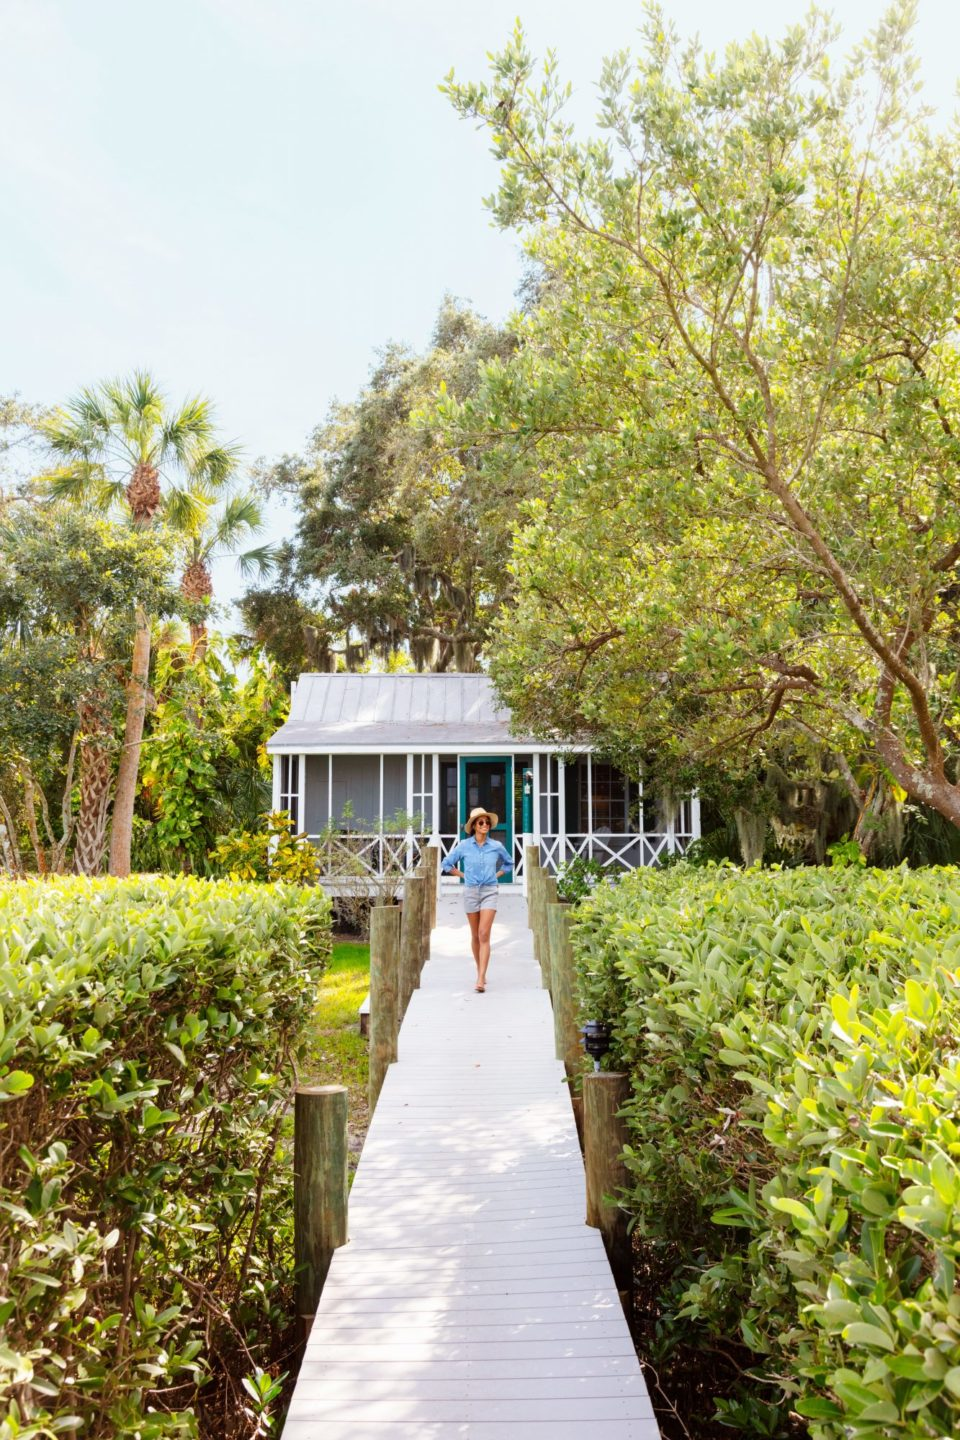 Cabbage Patch Cottage at Cabbage Key